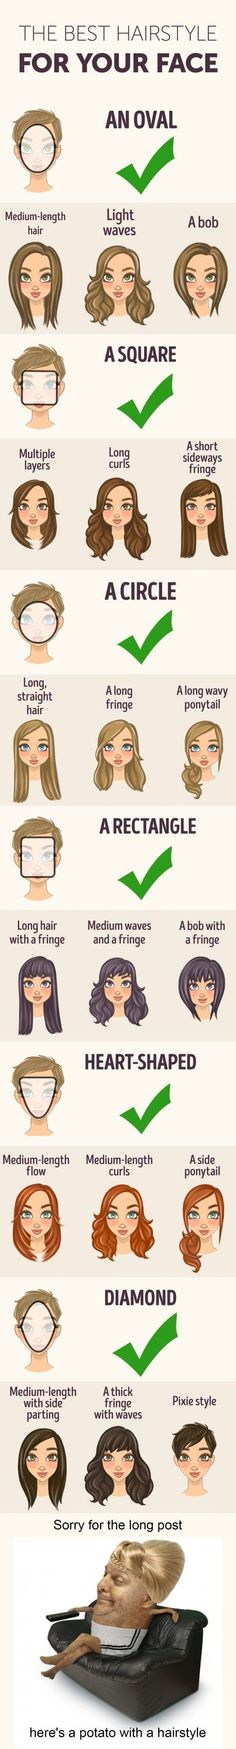 Fingers crossed but I'm hoping you'll love this: BEAUTY TIPS: the best hairstyle for your face http://lobyart.blogspot.com/2017/06/beauty-tips-best-hairstyle-for-your-face.html?utm_campaign=crowdfire&utm_content=crowdfire&utm_medium=social&utm_source=pinterest